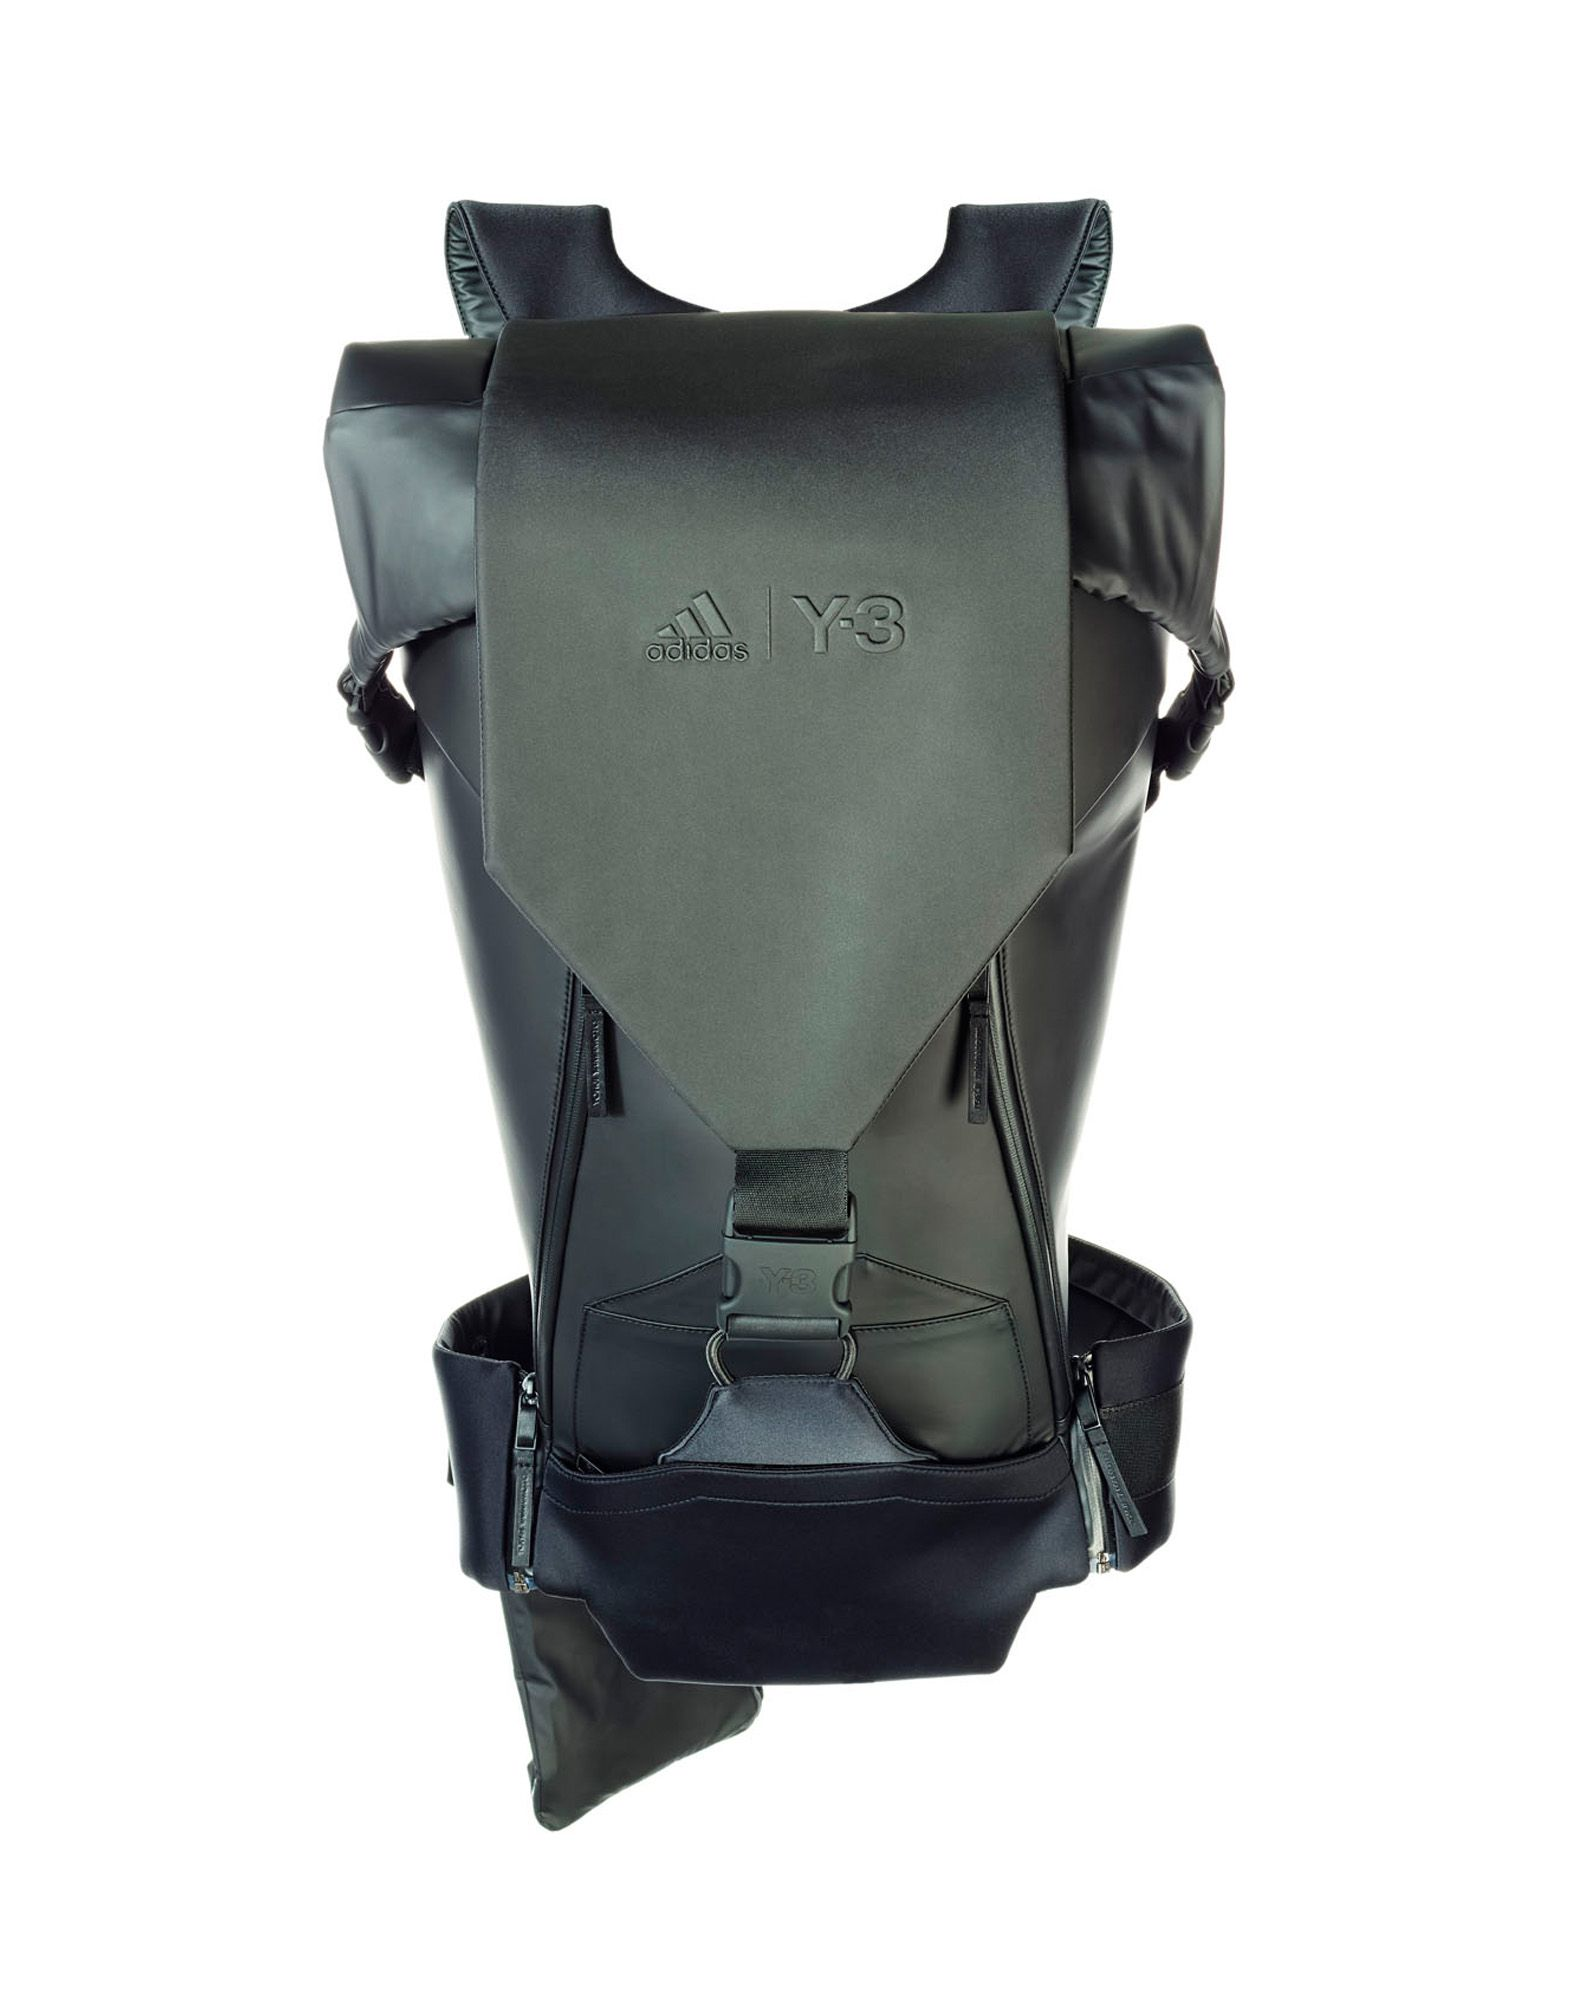 ce8ae3b80575 ... Y-3 SPORT Y-3 SPORT BACKPACK Backpack E ...